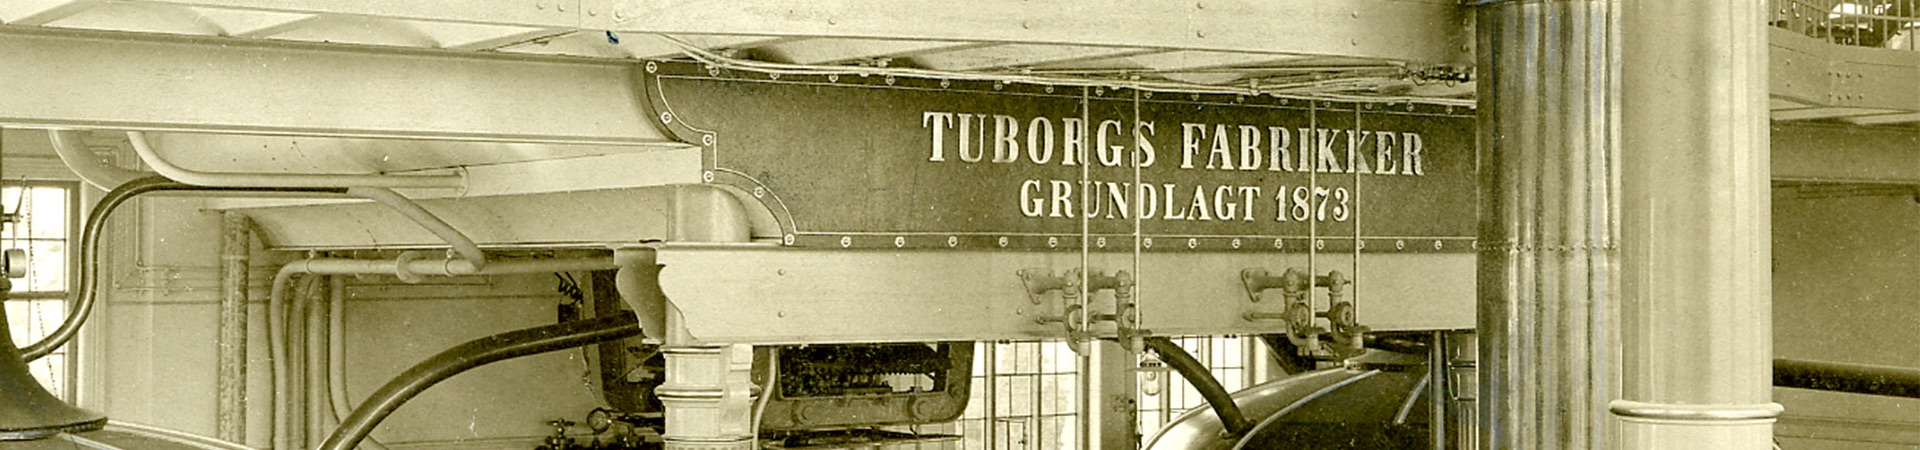 inside the Tuborg brewery facilities in 1953